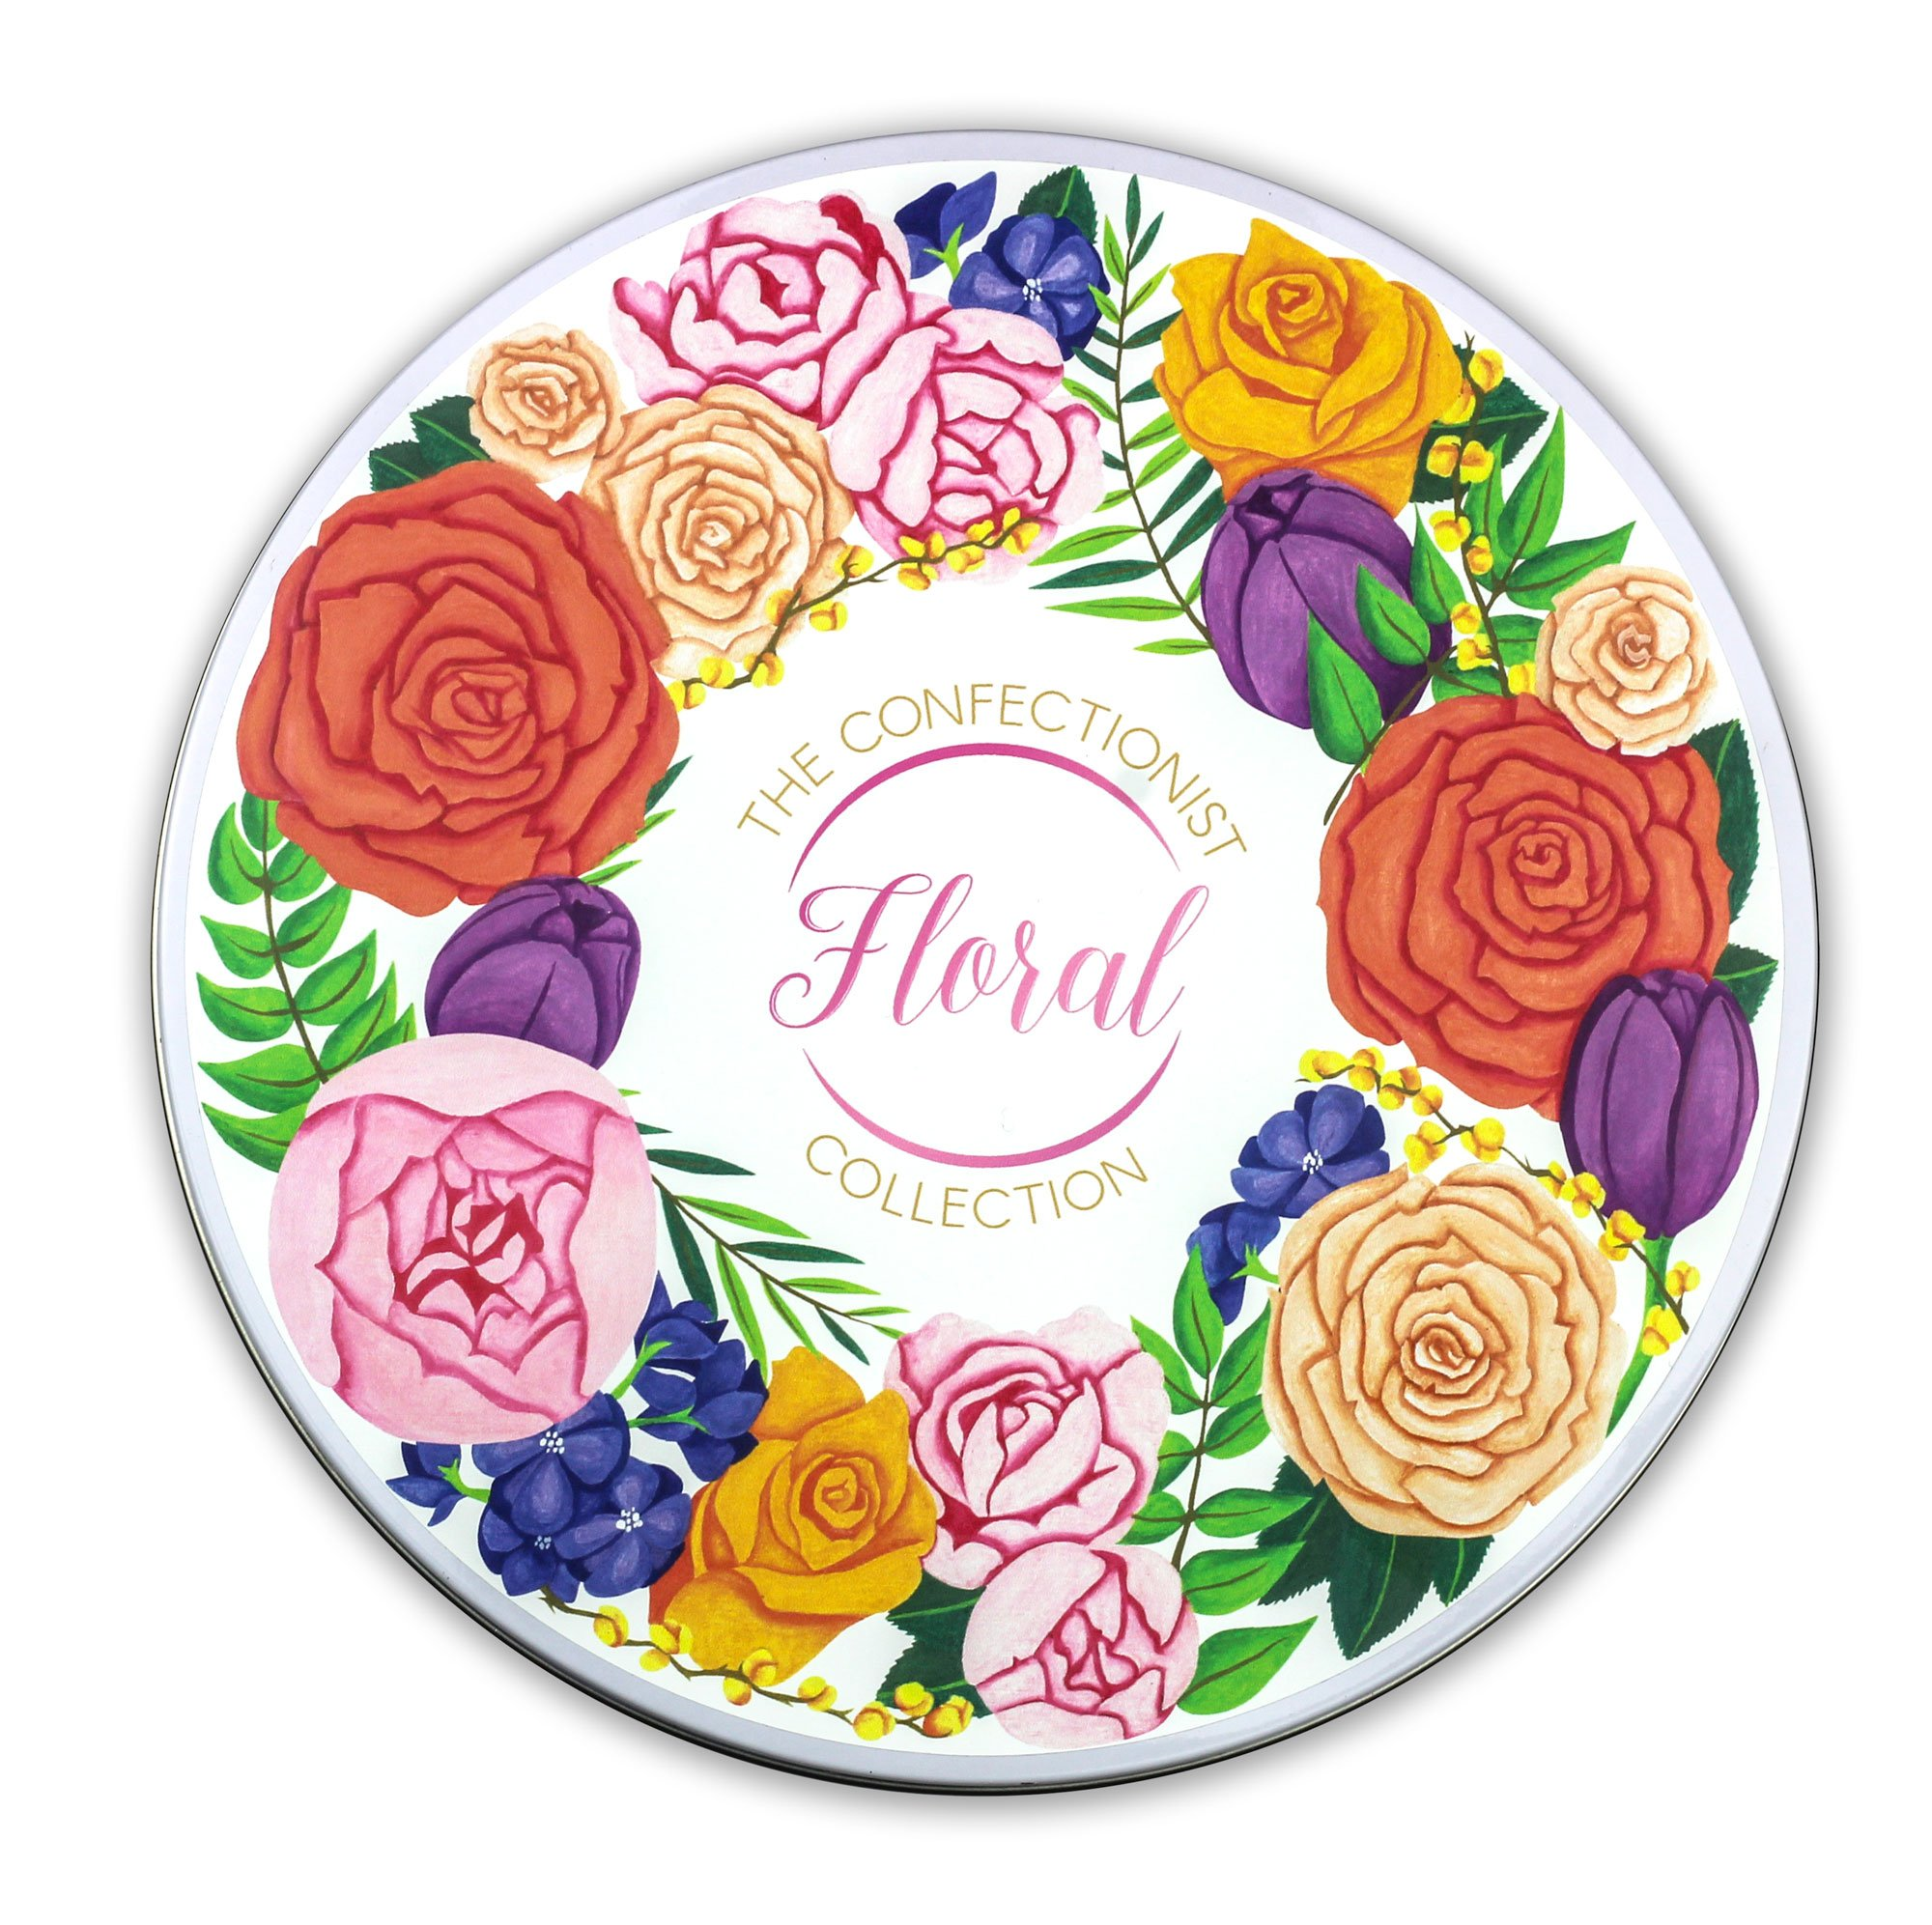 floral collection tin